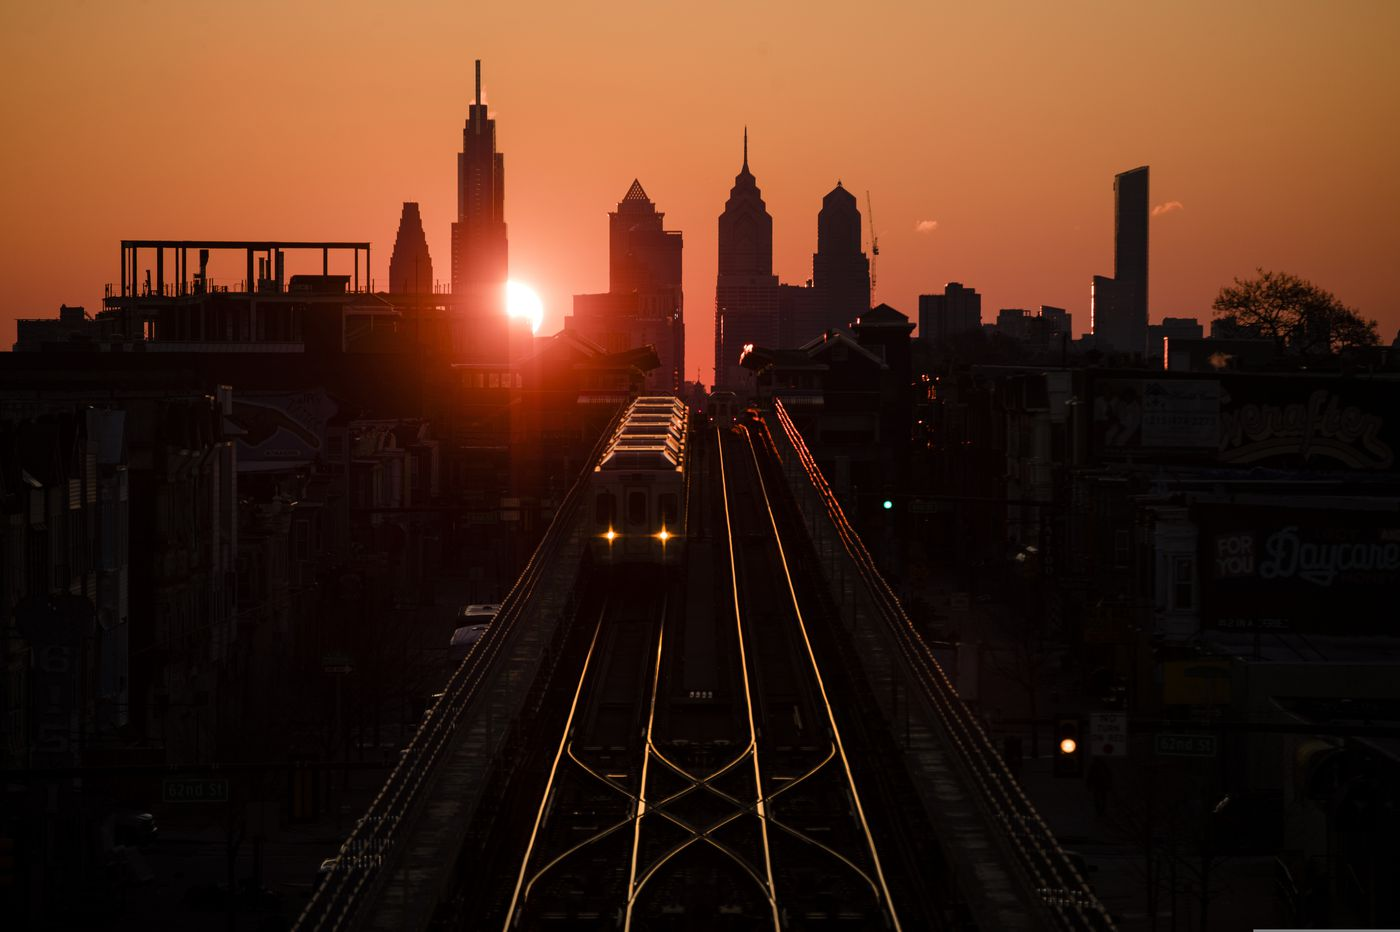 Philadelphia's next challenge: Stemming the tide of America's new urban crisis | Opinion